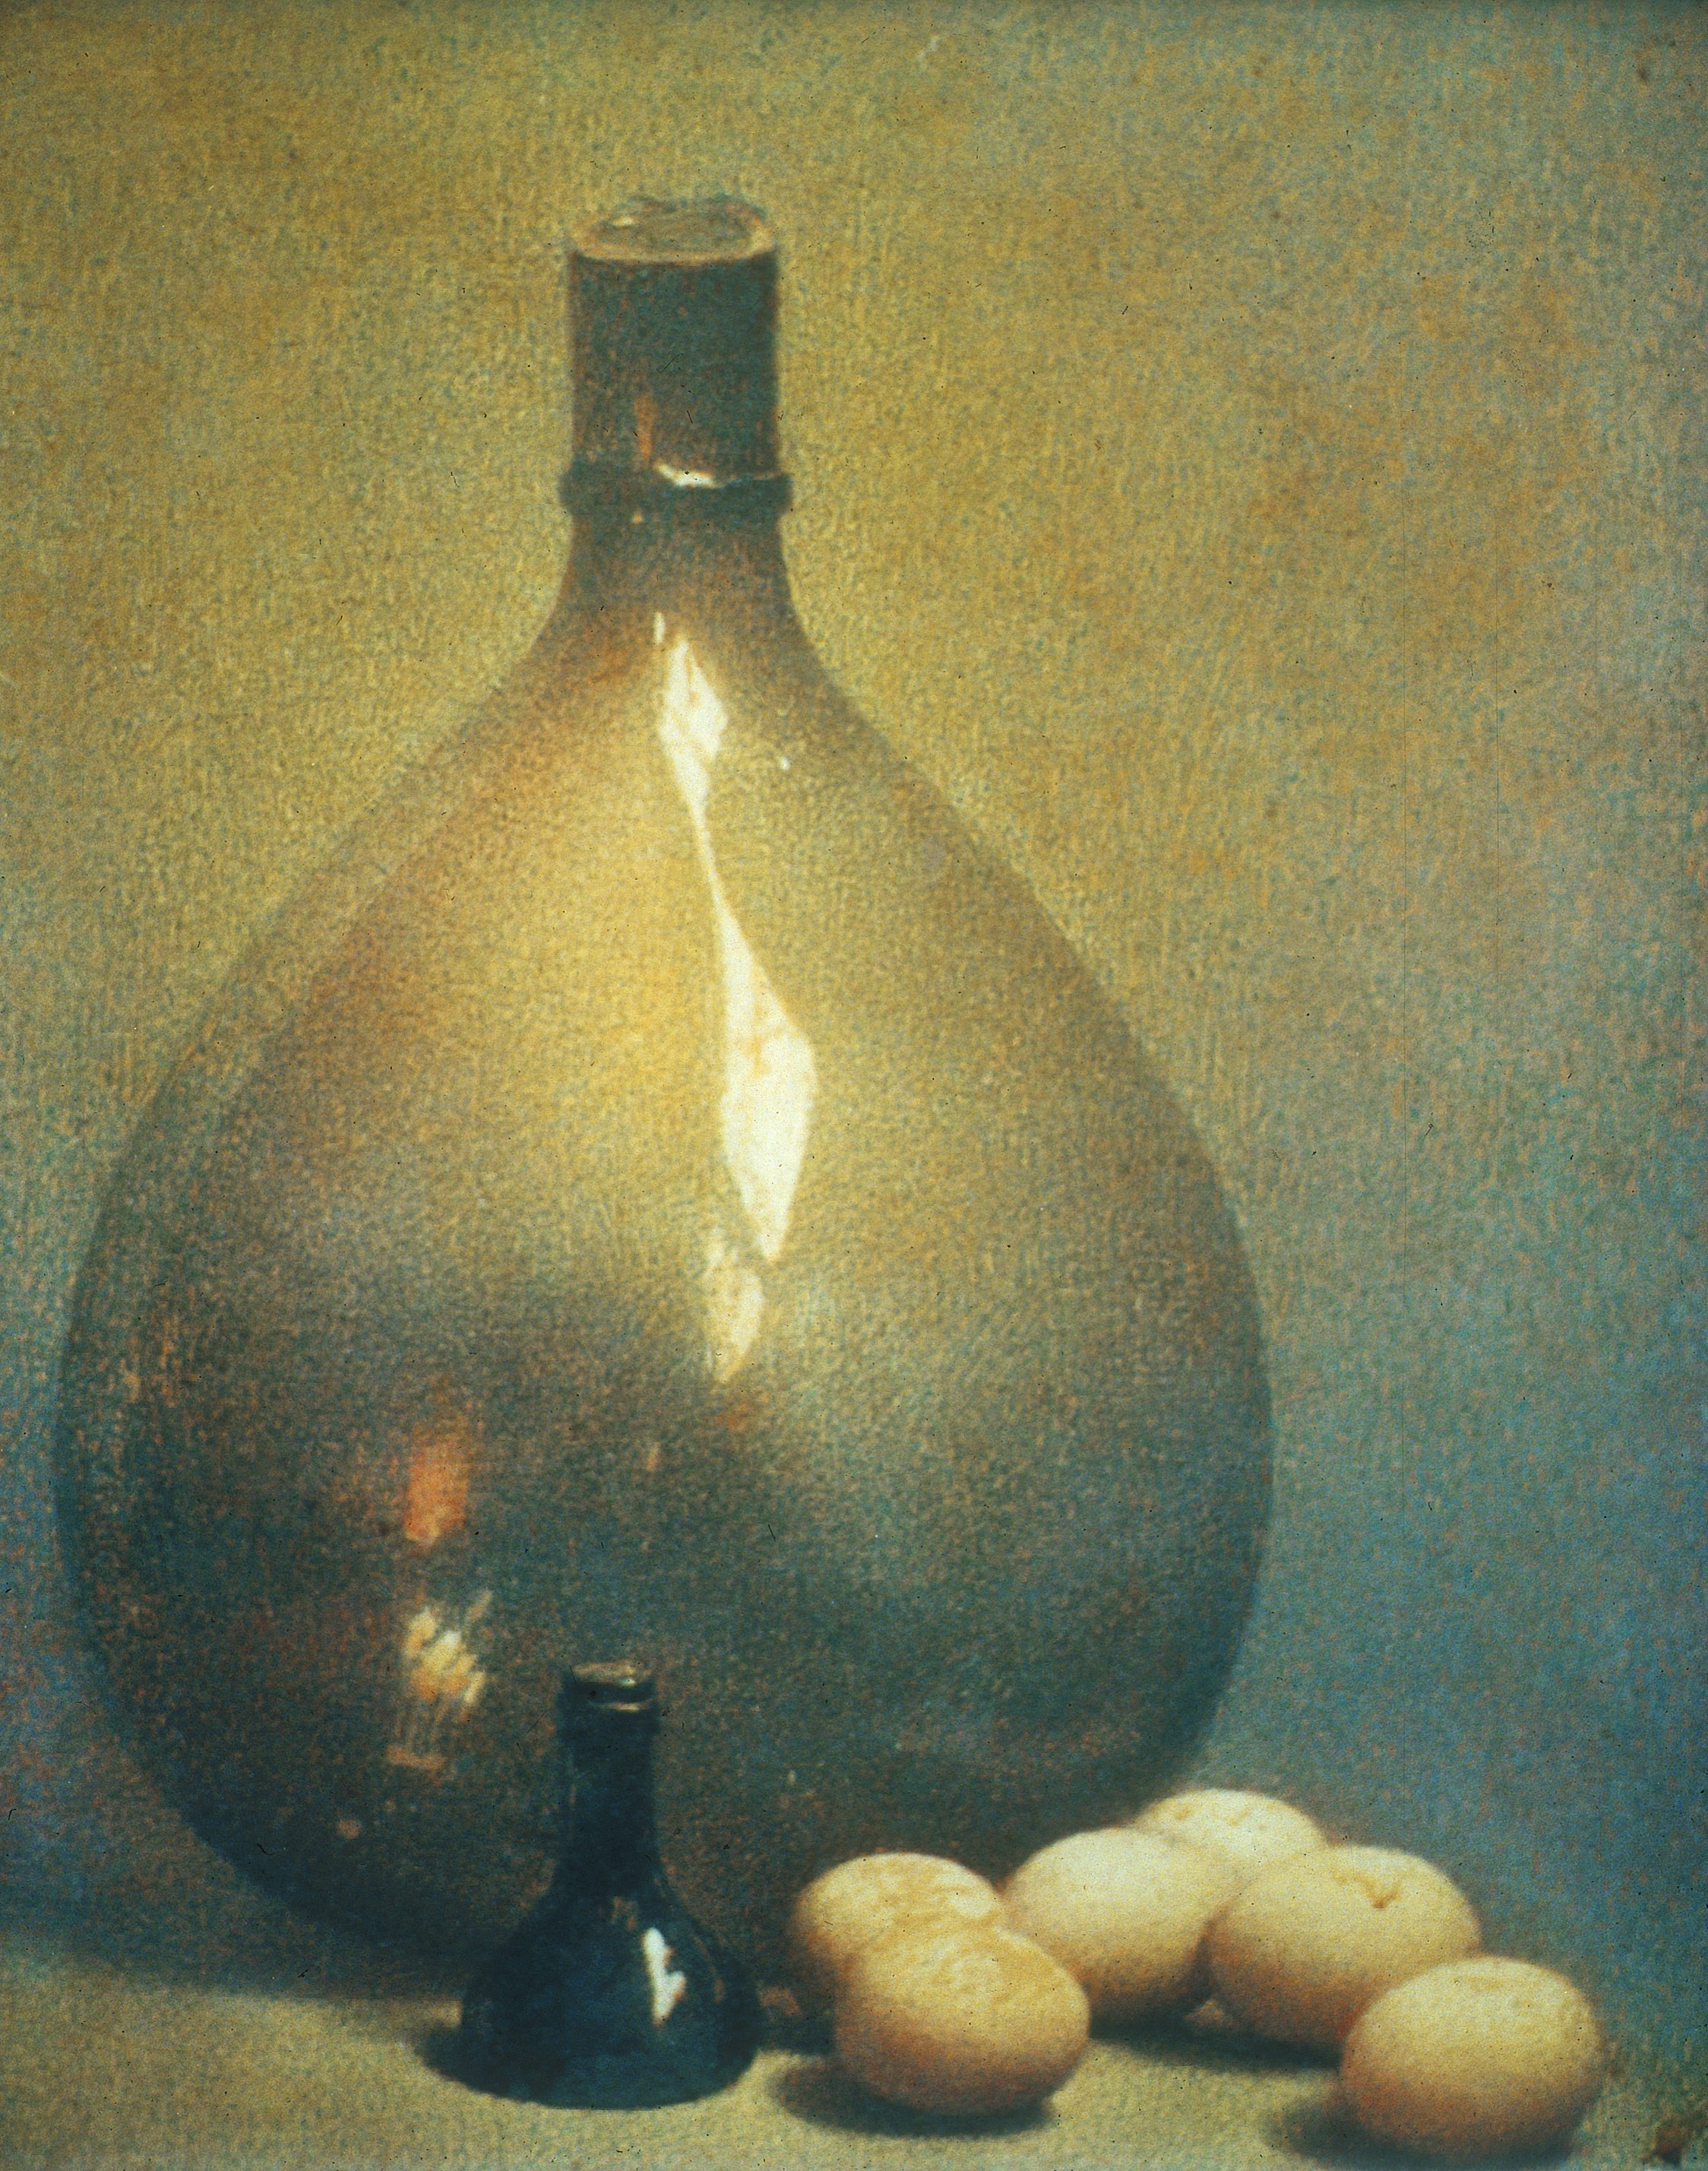 Still Life with Bottle, Oil on Canvas, Unknown date